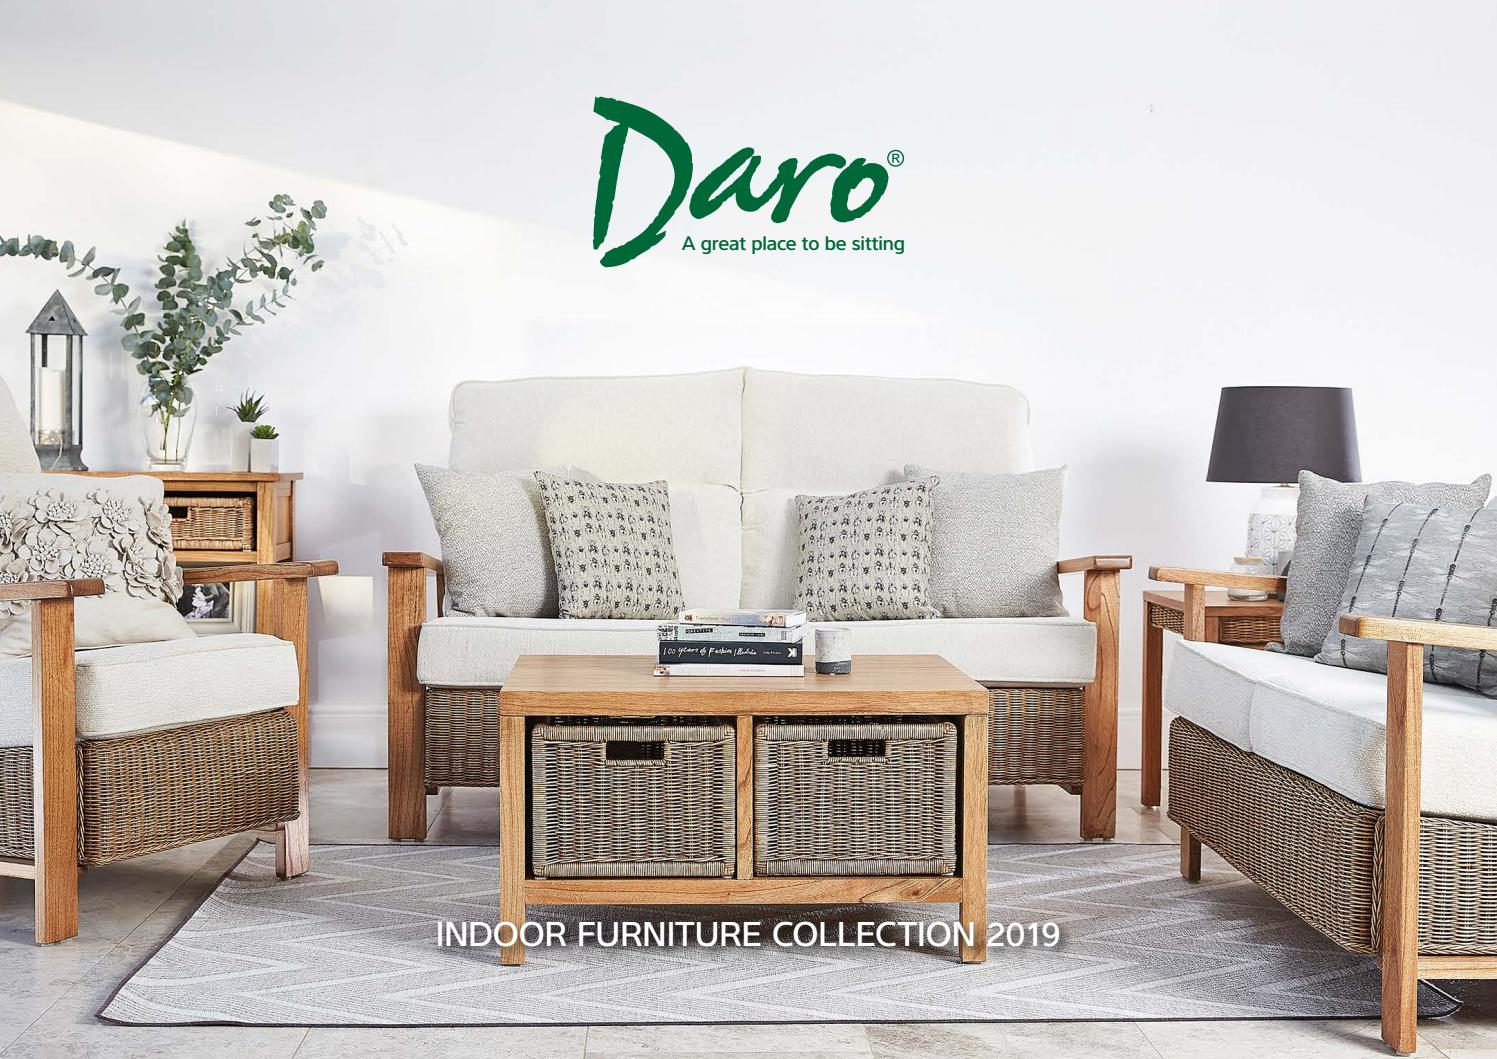 Daro indoor furniture collection 2019 by daro trading ltd issuu